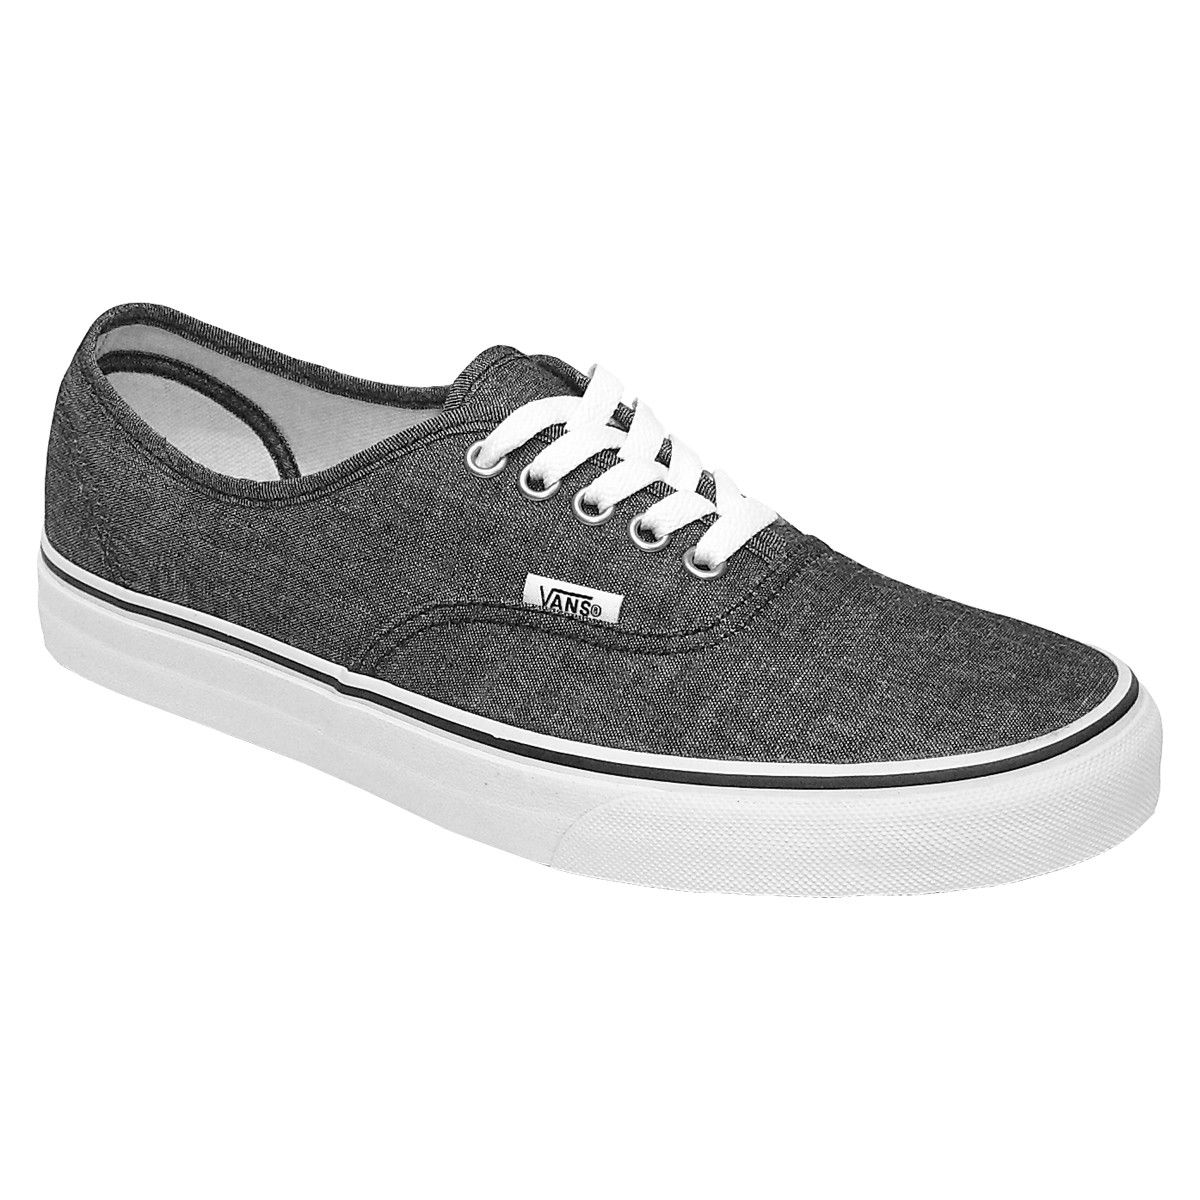 Vans shoes Authentic canvas classic chambray black 75€ #vans #vansauthentic #vansclassics #authentic #authenticvans #classicsvans #vansshoes #vansfootwear #chaussure #chaussures #skate #skateboard #skateshop